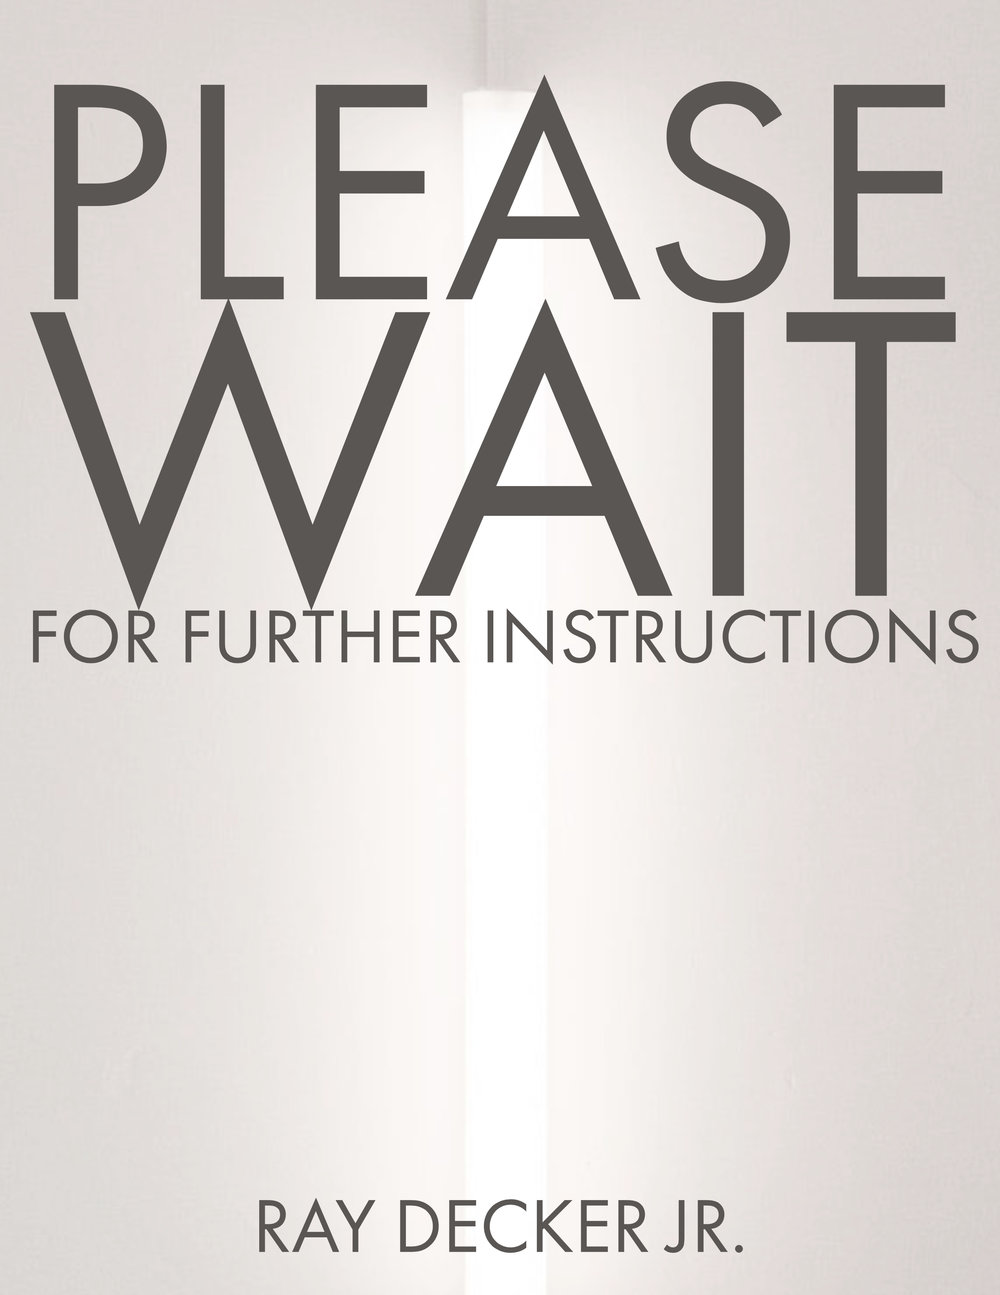 Please Wait For Further Instructions - In a purgatory of instruction and order, a man finds himself unable to progress.Q: What is a Micro-Story?A: It's a super short story typically told in 1,000 words or less.Q: How Long of a Read is A Micro-Story?A: Depending on your reading speed, it could take as little as a few minutes.Q: Why should I read Micro-Stories?A: Some people talk about wanting to read more, Micro-Stories are a gateway for those who don't read enough who wish to read more or for those who love reading any and everything.Q: How much does a Micro-Storie cost?A: ALL Micro-Stories published by Ray Decker Jr. are COMPLETELY FREE!